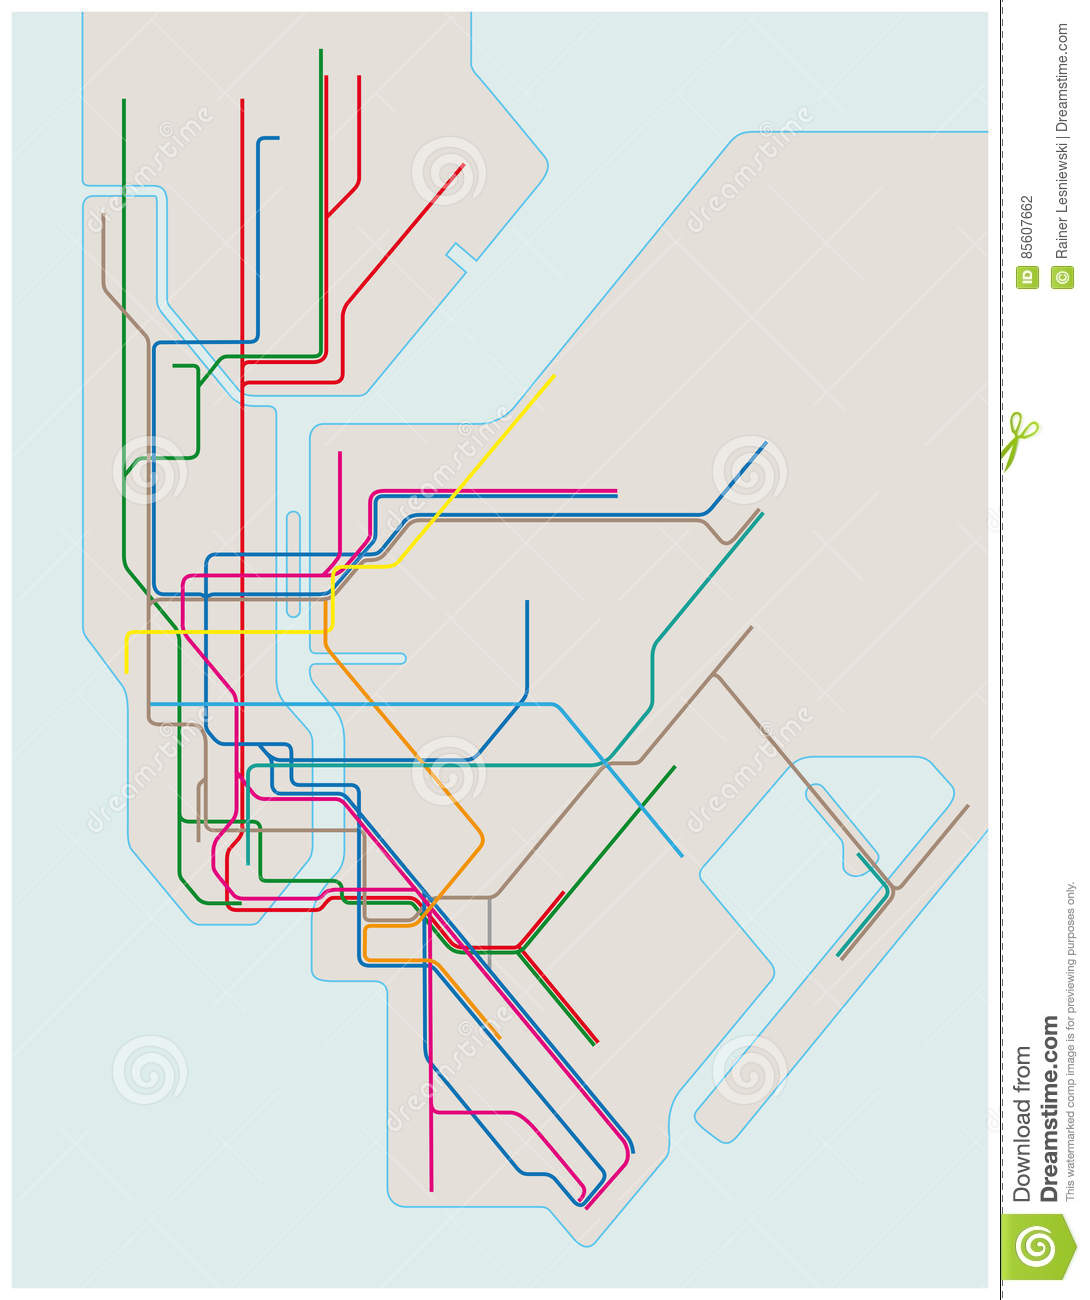 Download New York Subway Map.Colored Subway Map Of New York City Stock Vector Illustration Of